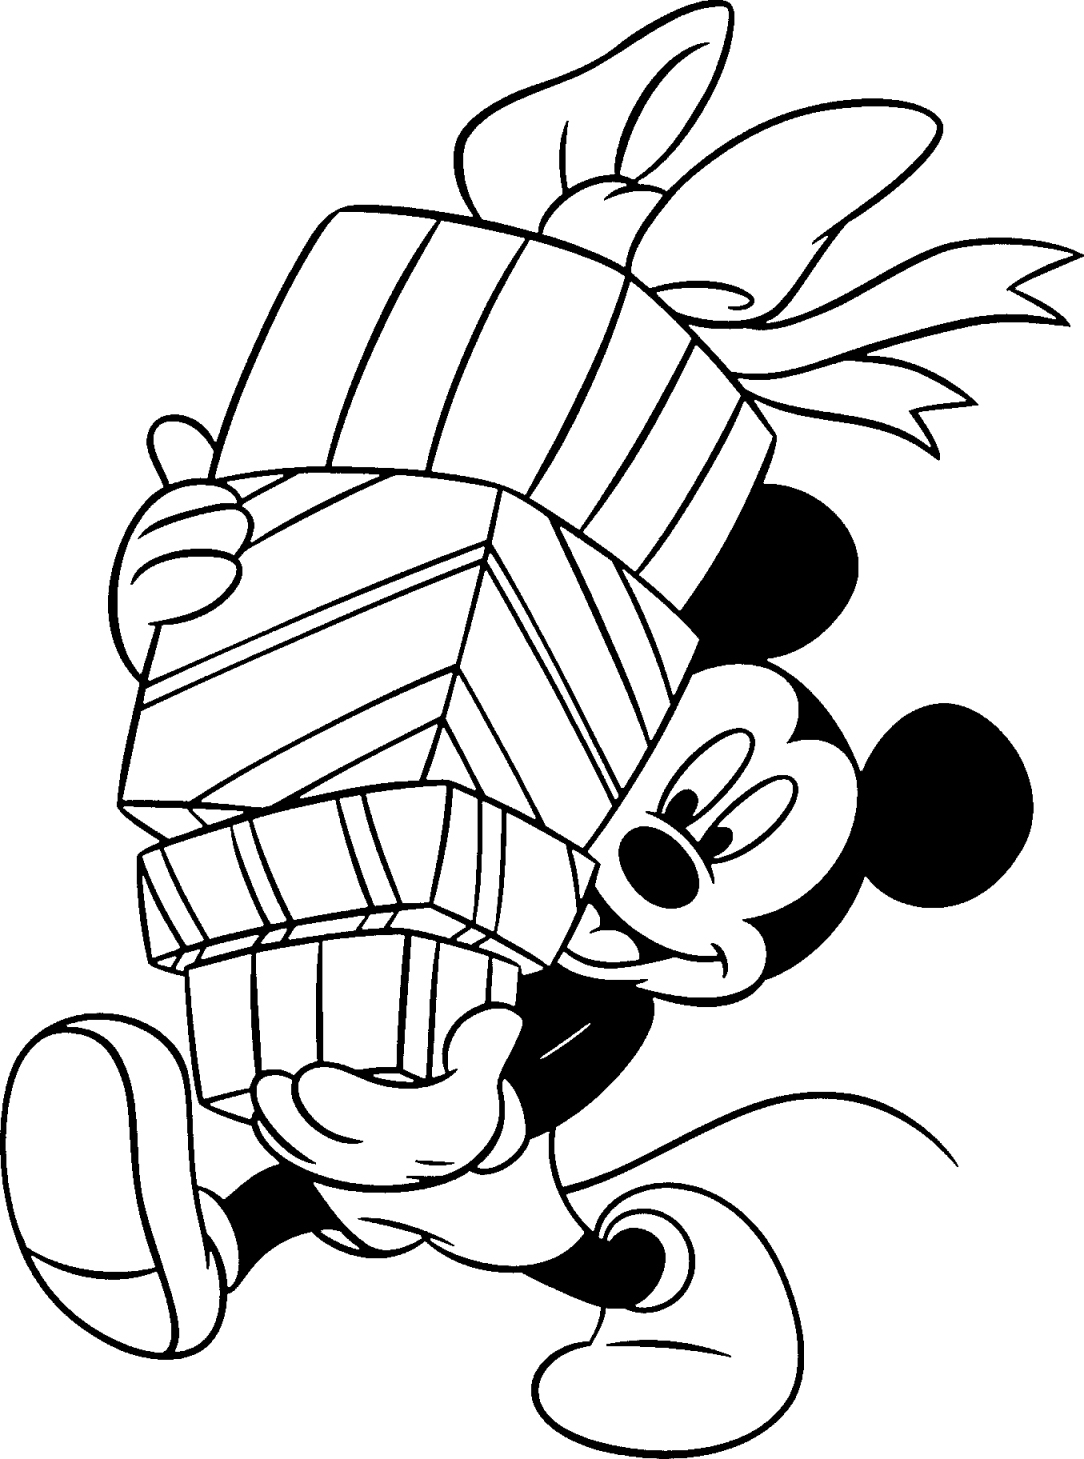 printable free disney christmas coloring pages - Christmas Coloring Sheets Kids